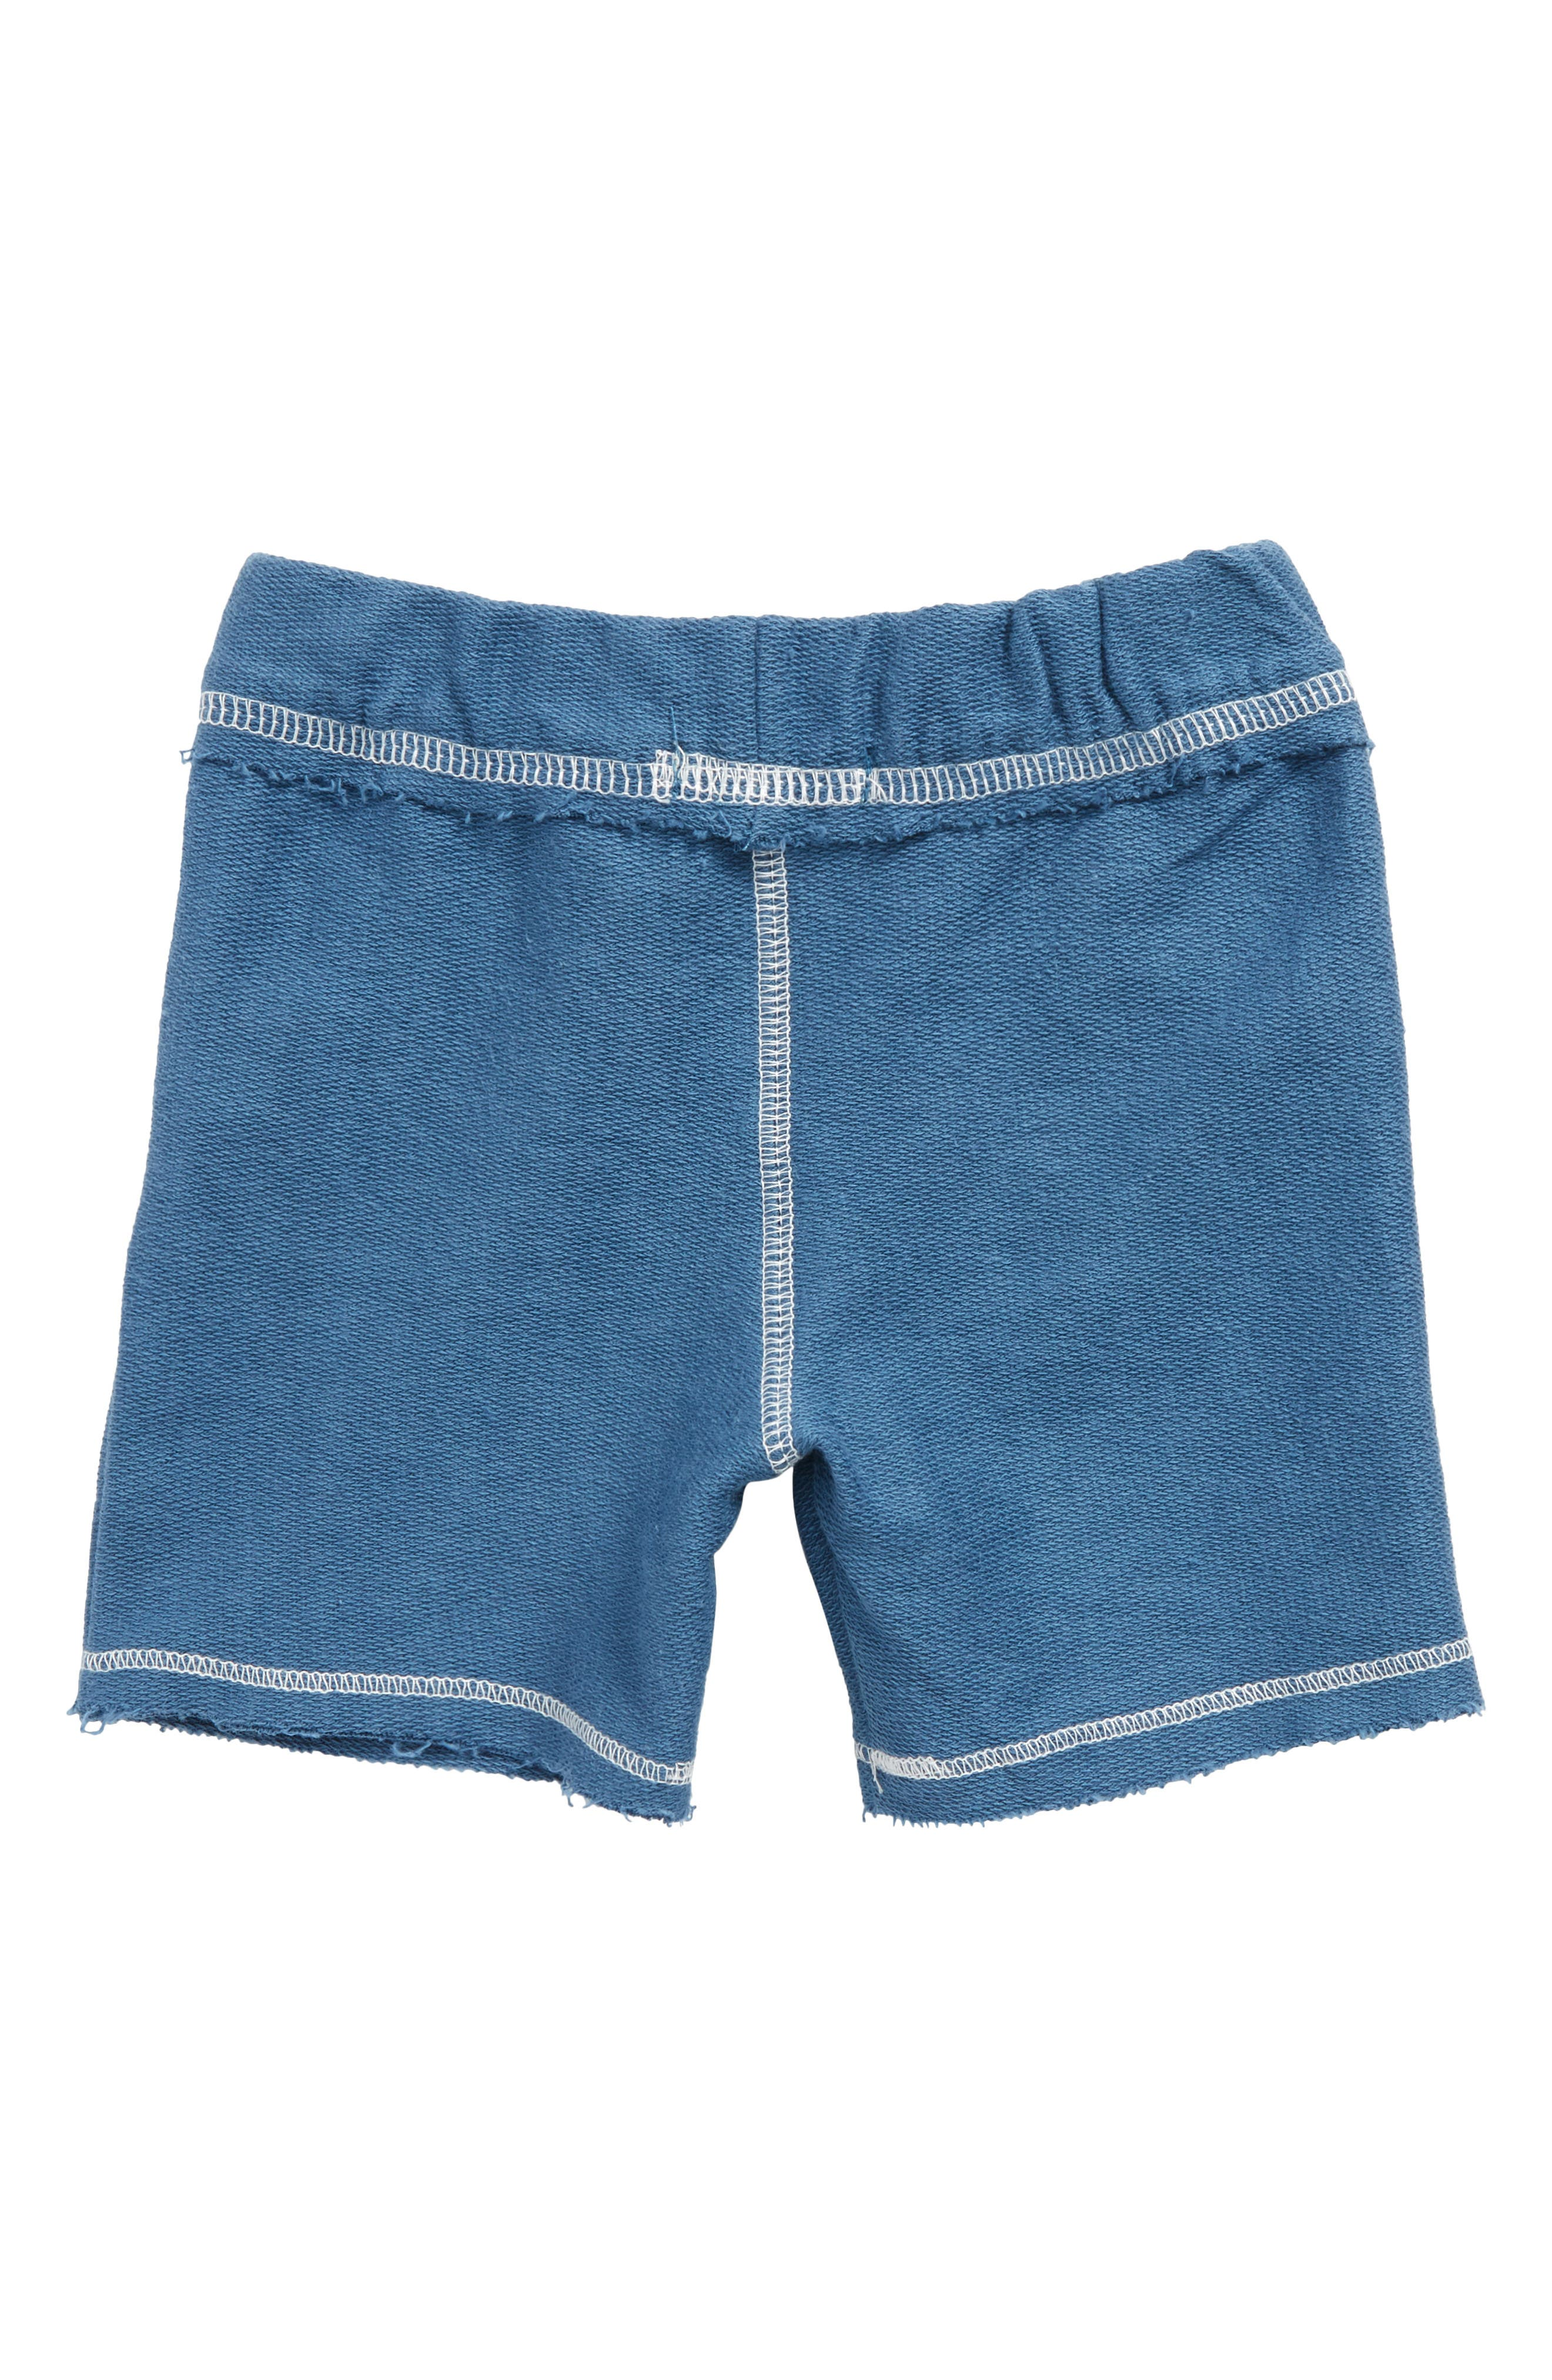 Organic Cotton French Terry Shorts,                             Alternate thumbnail 2, color,                             Blue Star